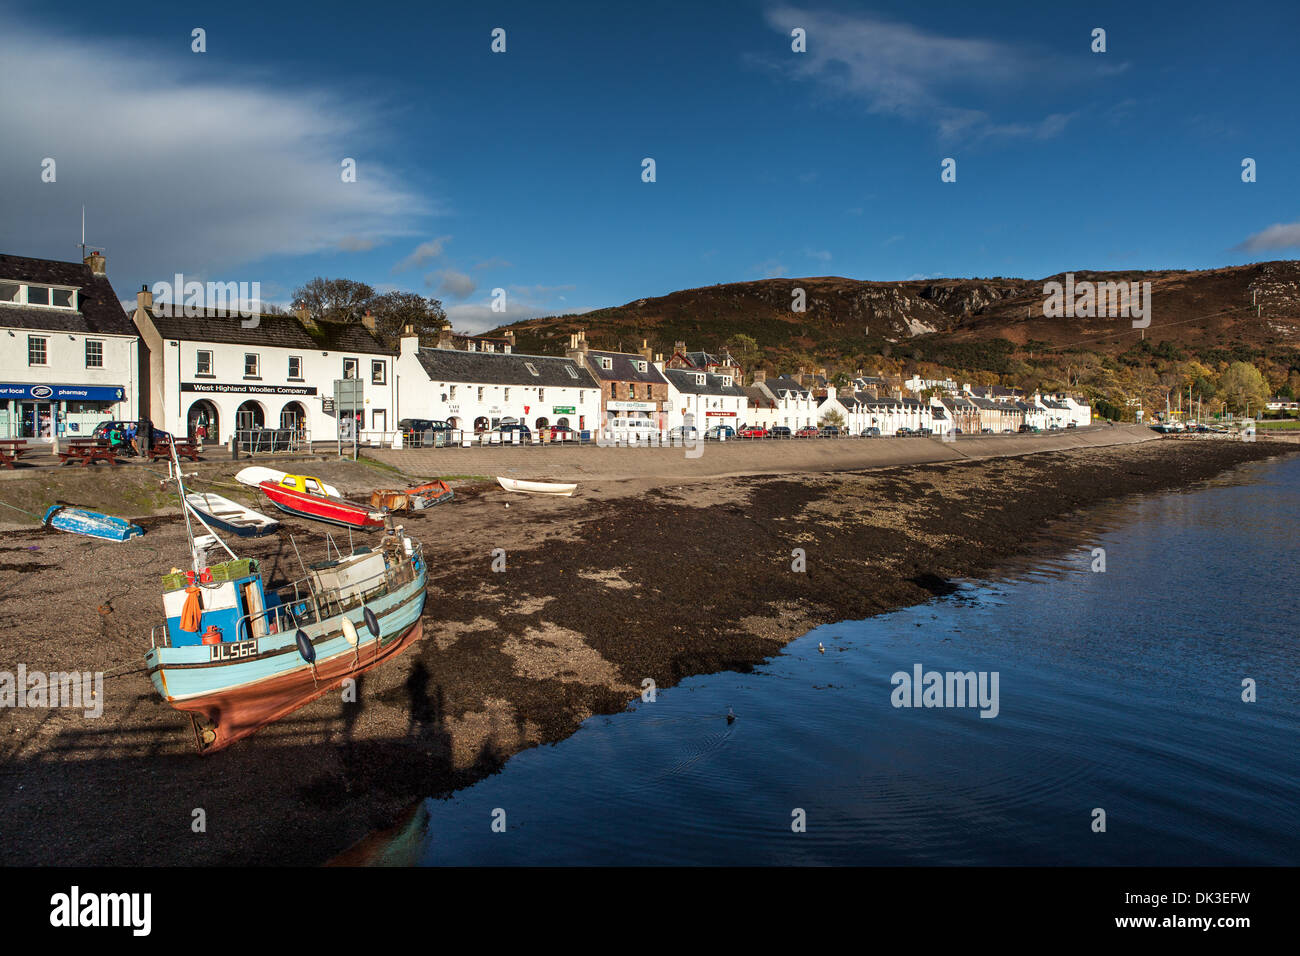 Boats and Loch Broom, Ullapool, Wester Ross, Highlands, Scotland - Stock Image